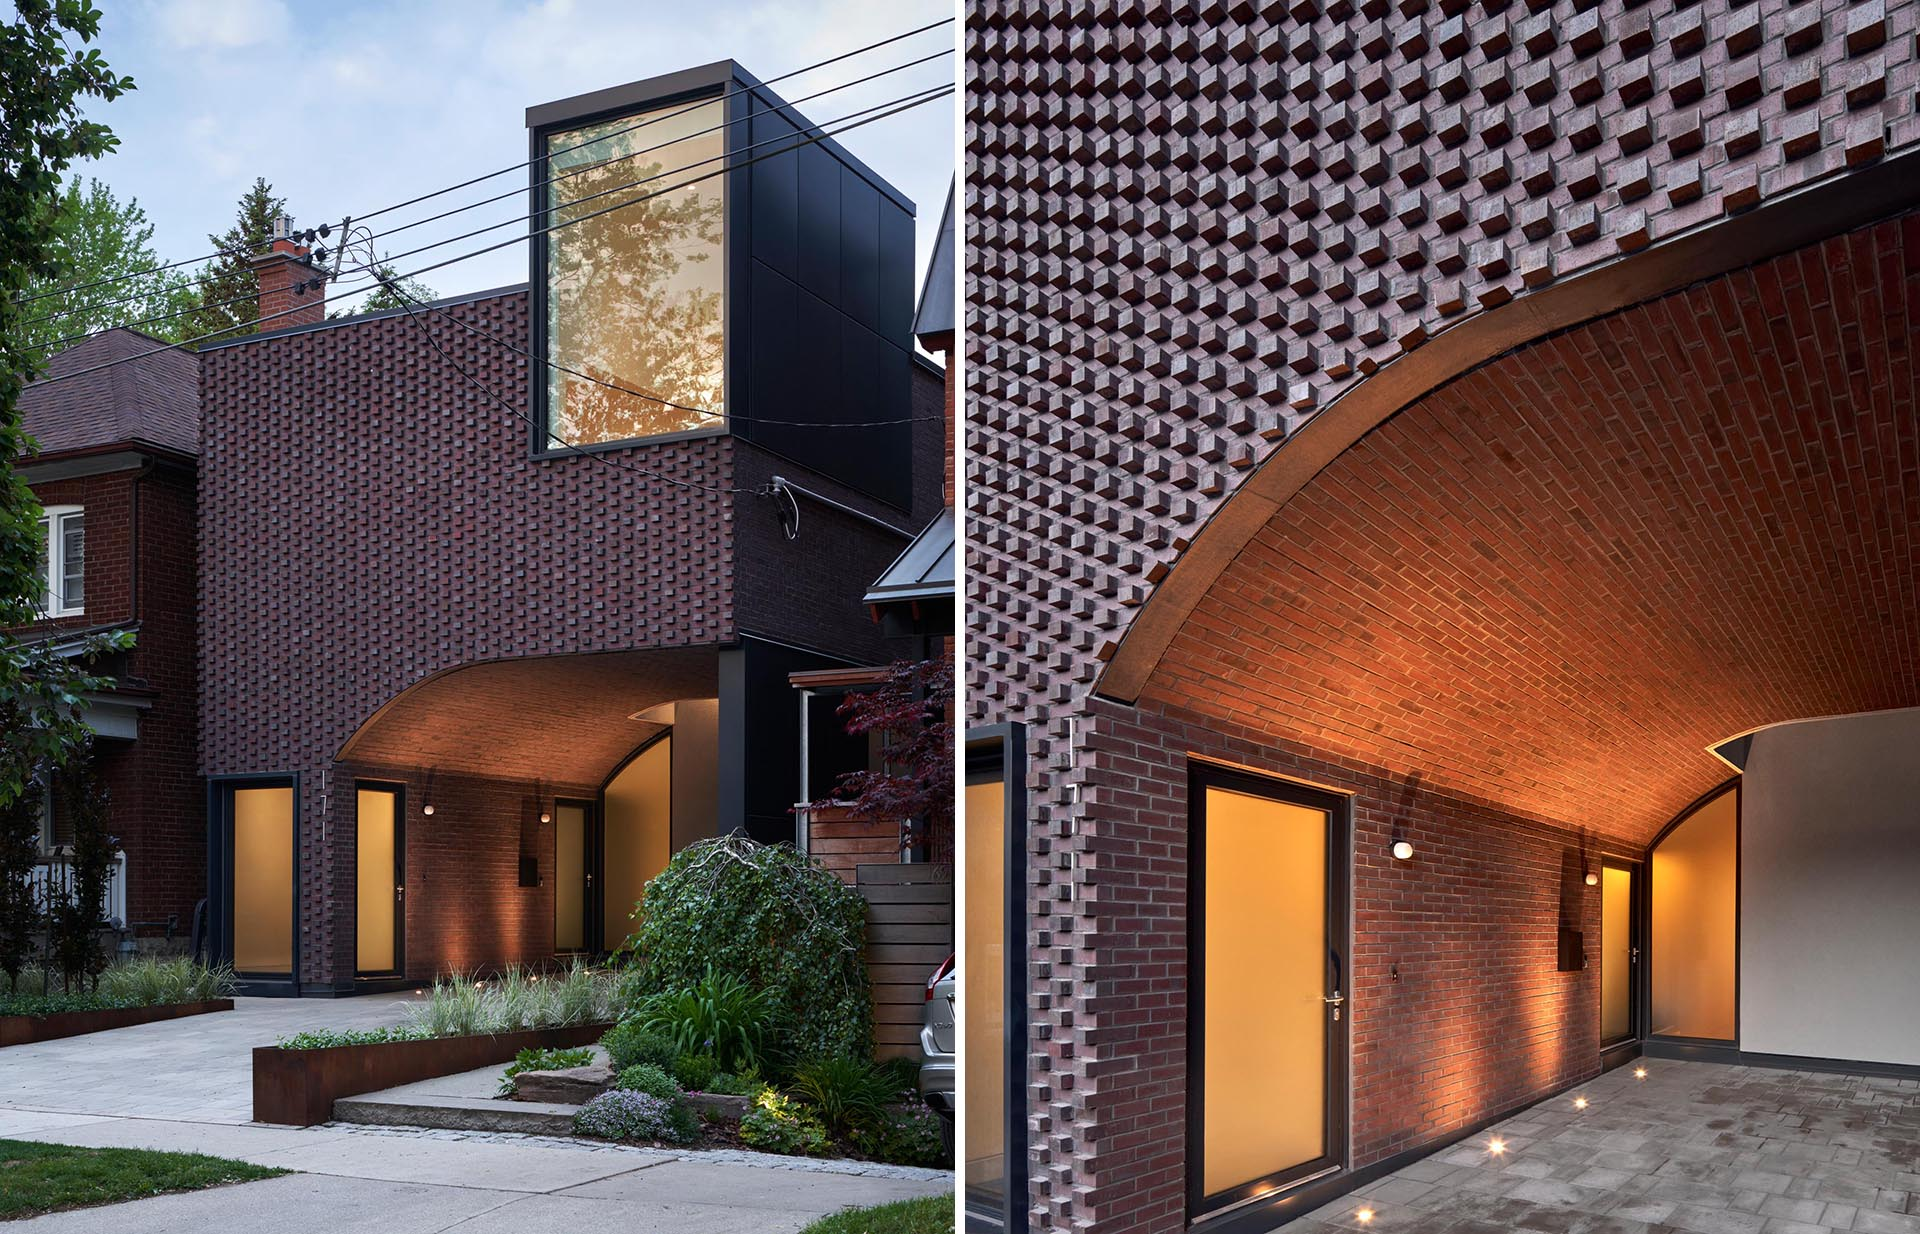 The brickwork that covers the facade and wraps the ceiling and walls of the carport of this modern house plays into Toronto's history of masonry detailing.